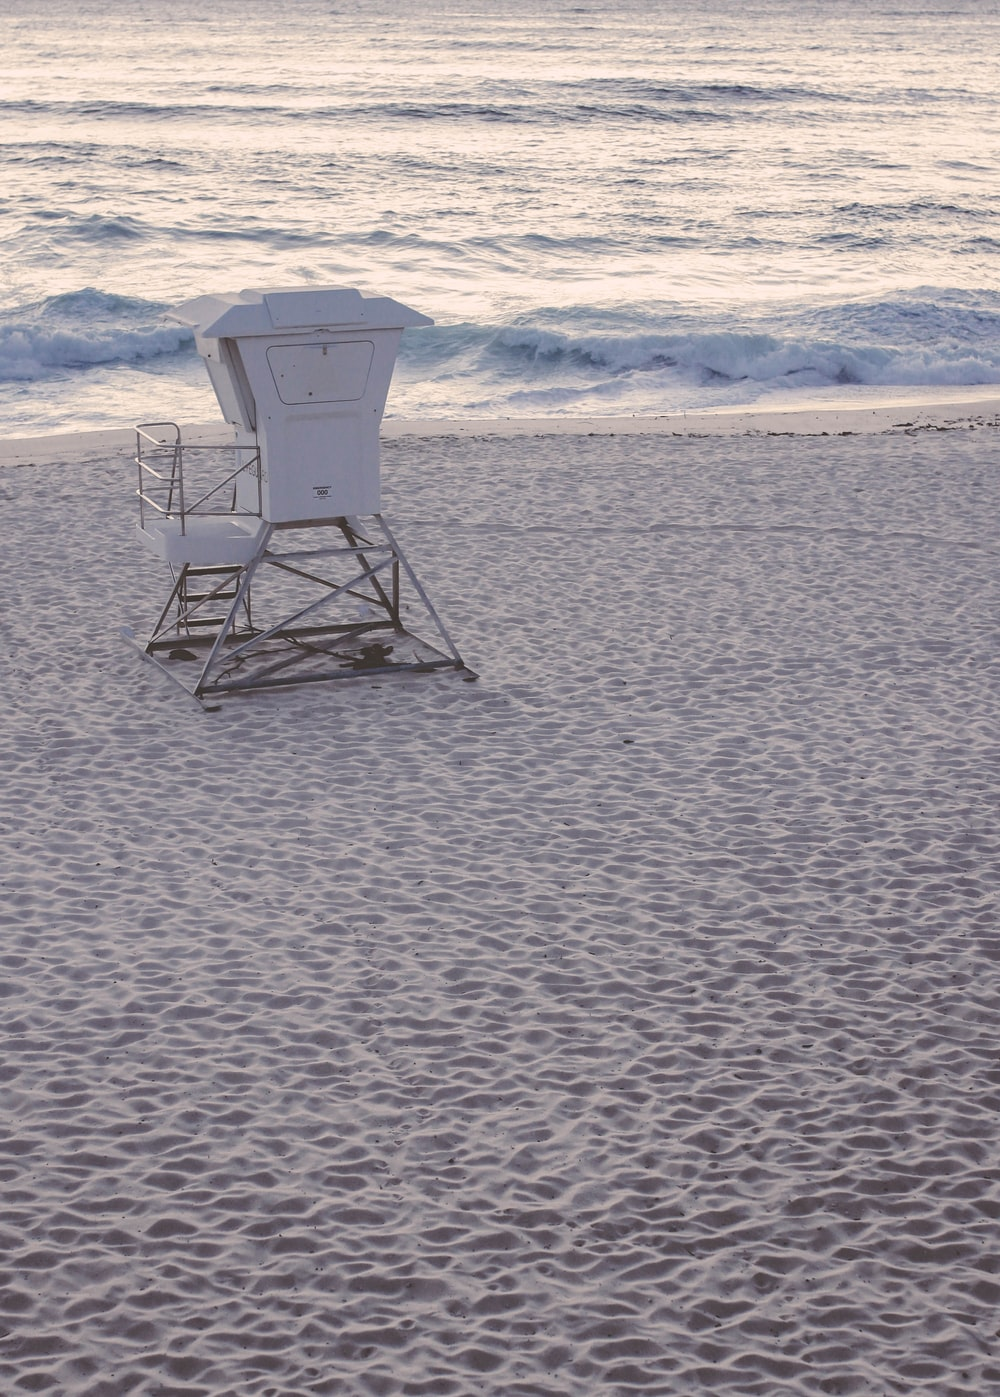 white and gray lifeguard chair on beach shore during daytime